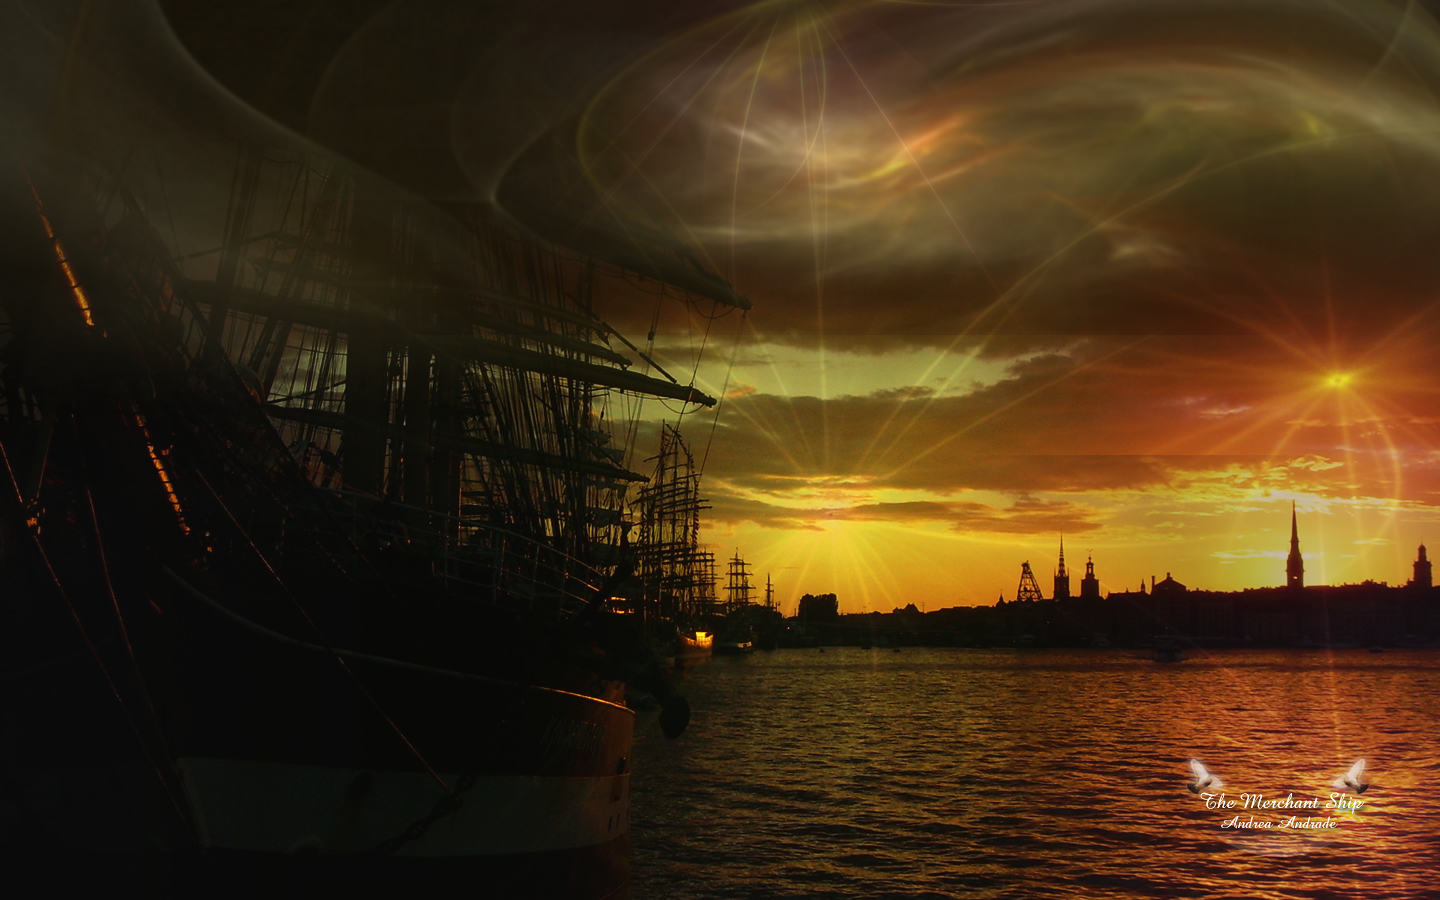 The Merchant Ship Wallpaper - Free Download